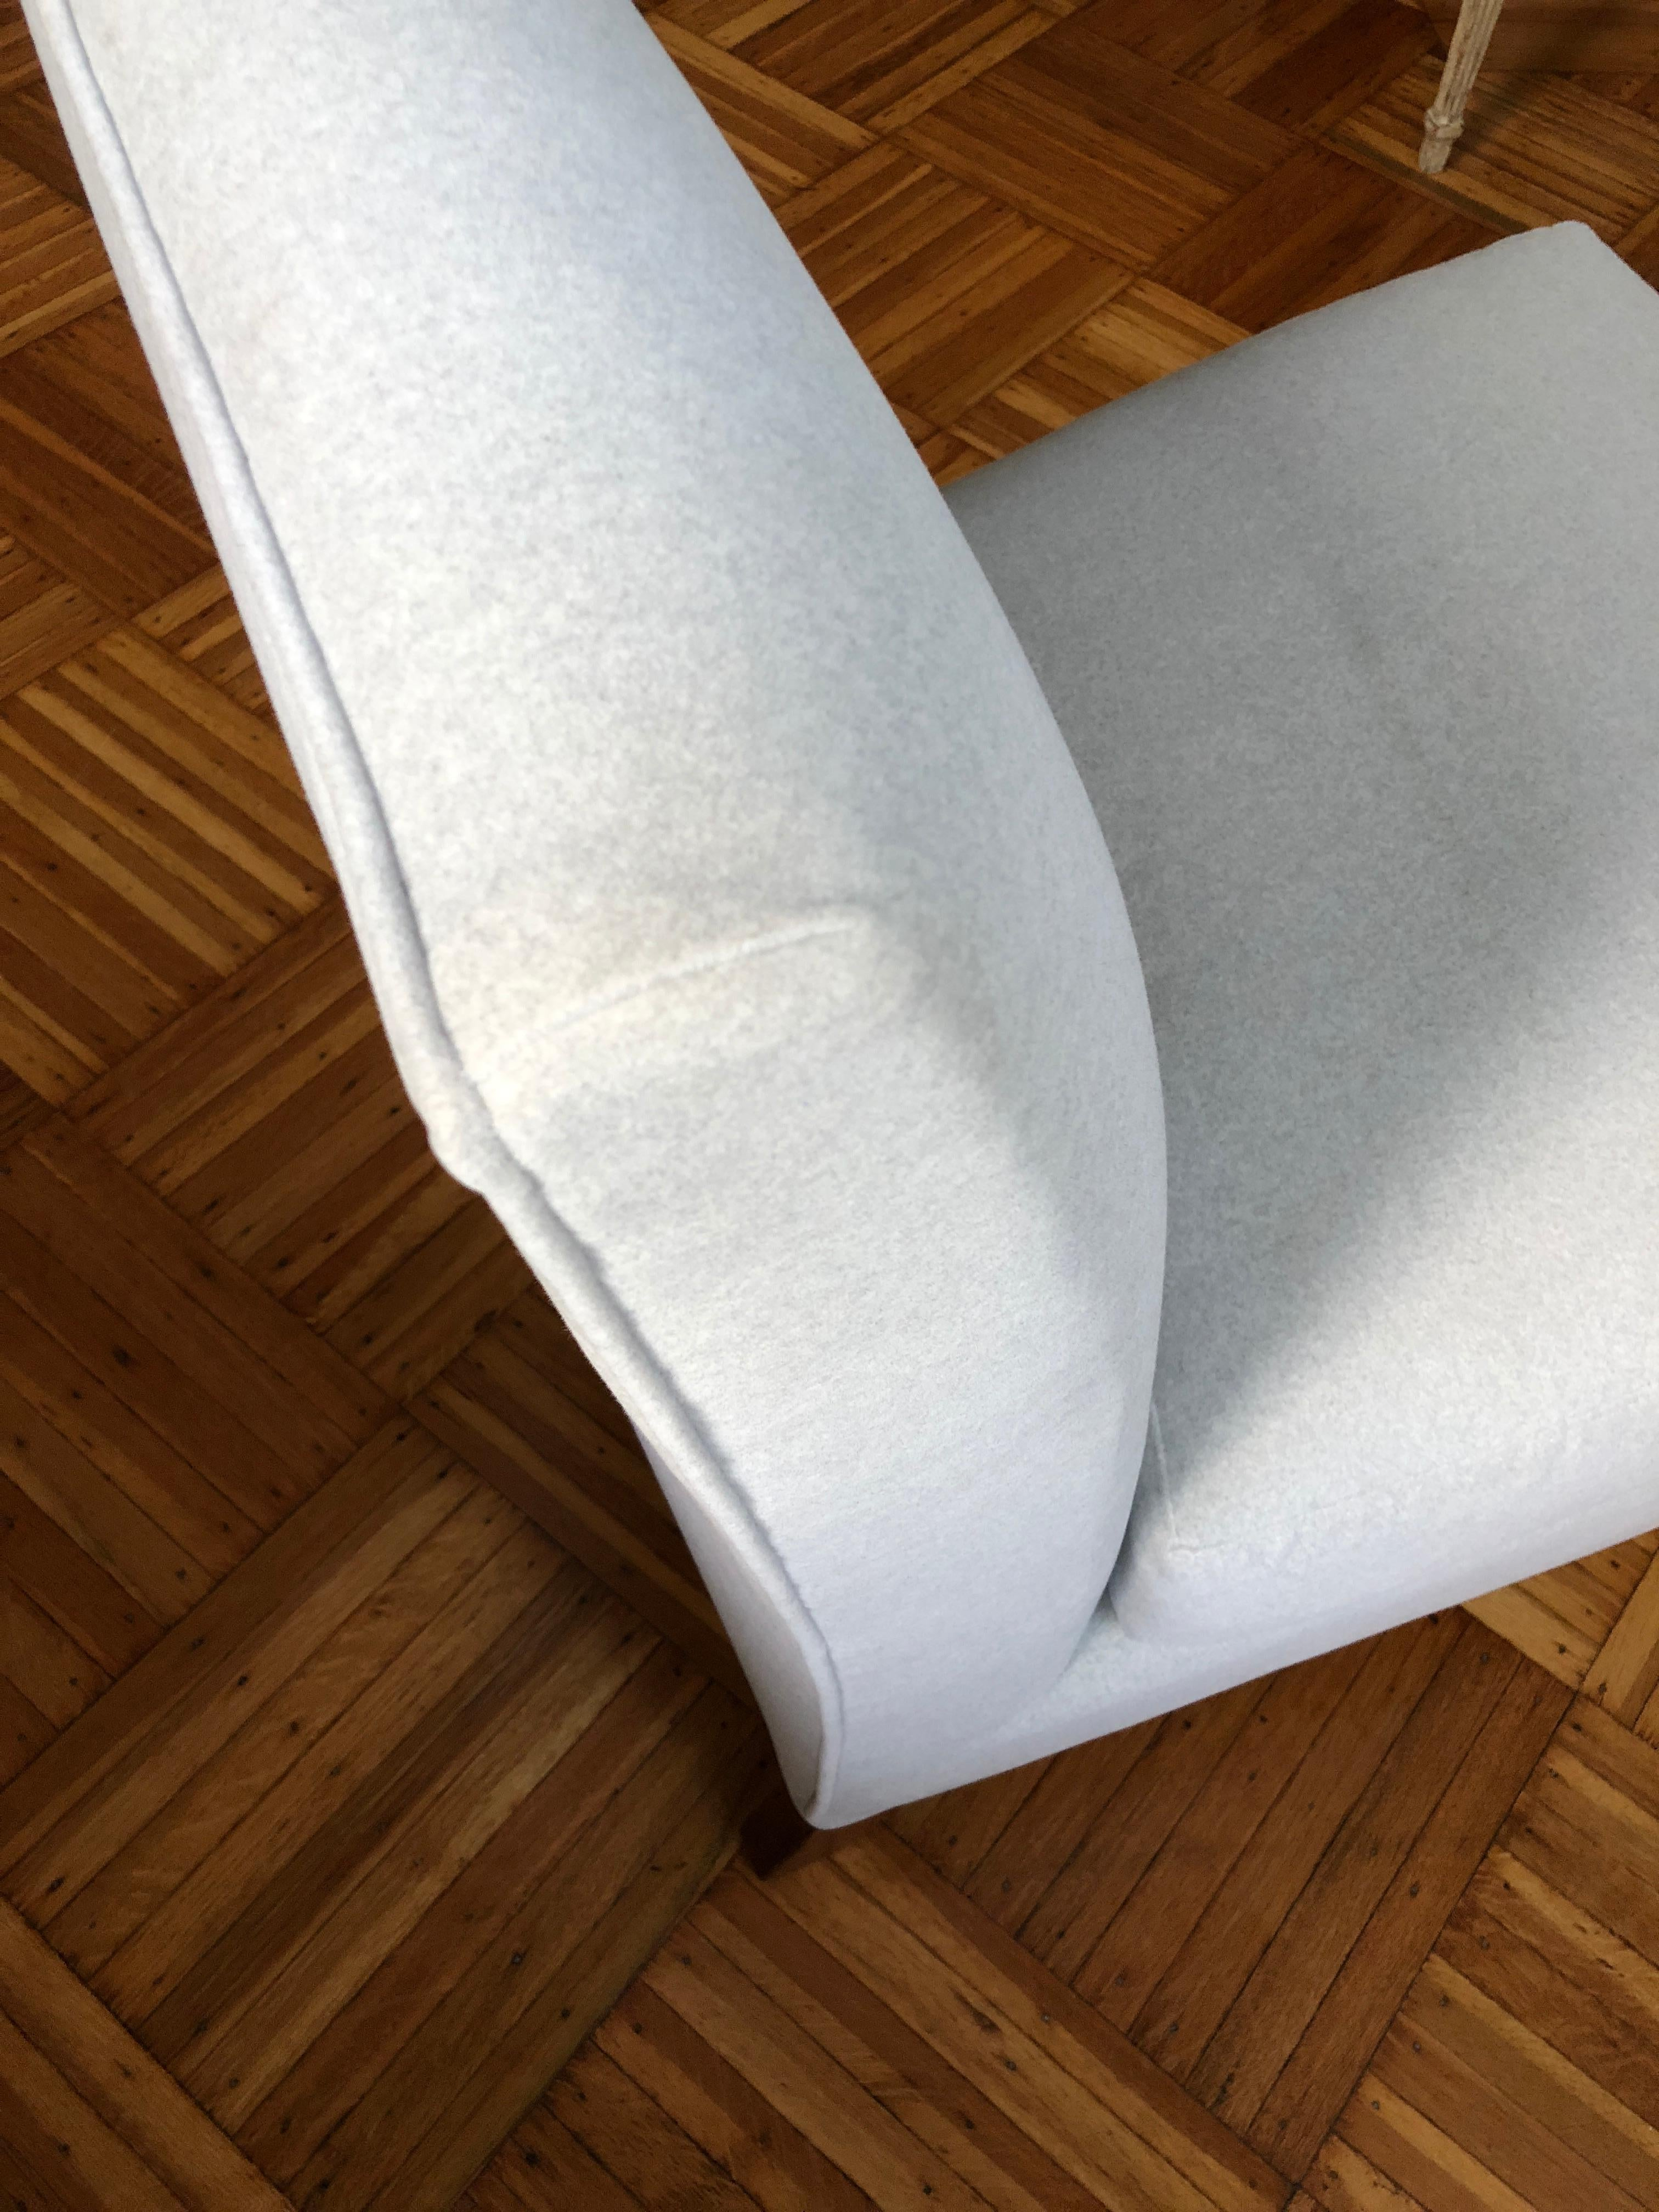 Cloud Slipper Chair Armless New Fabric Soft Gray Original Wood Casters In Stock